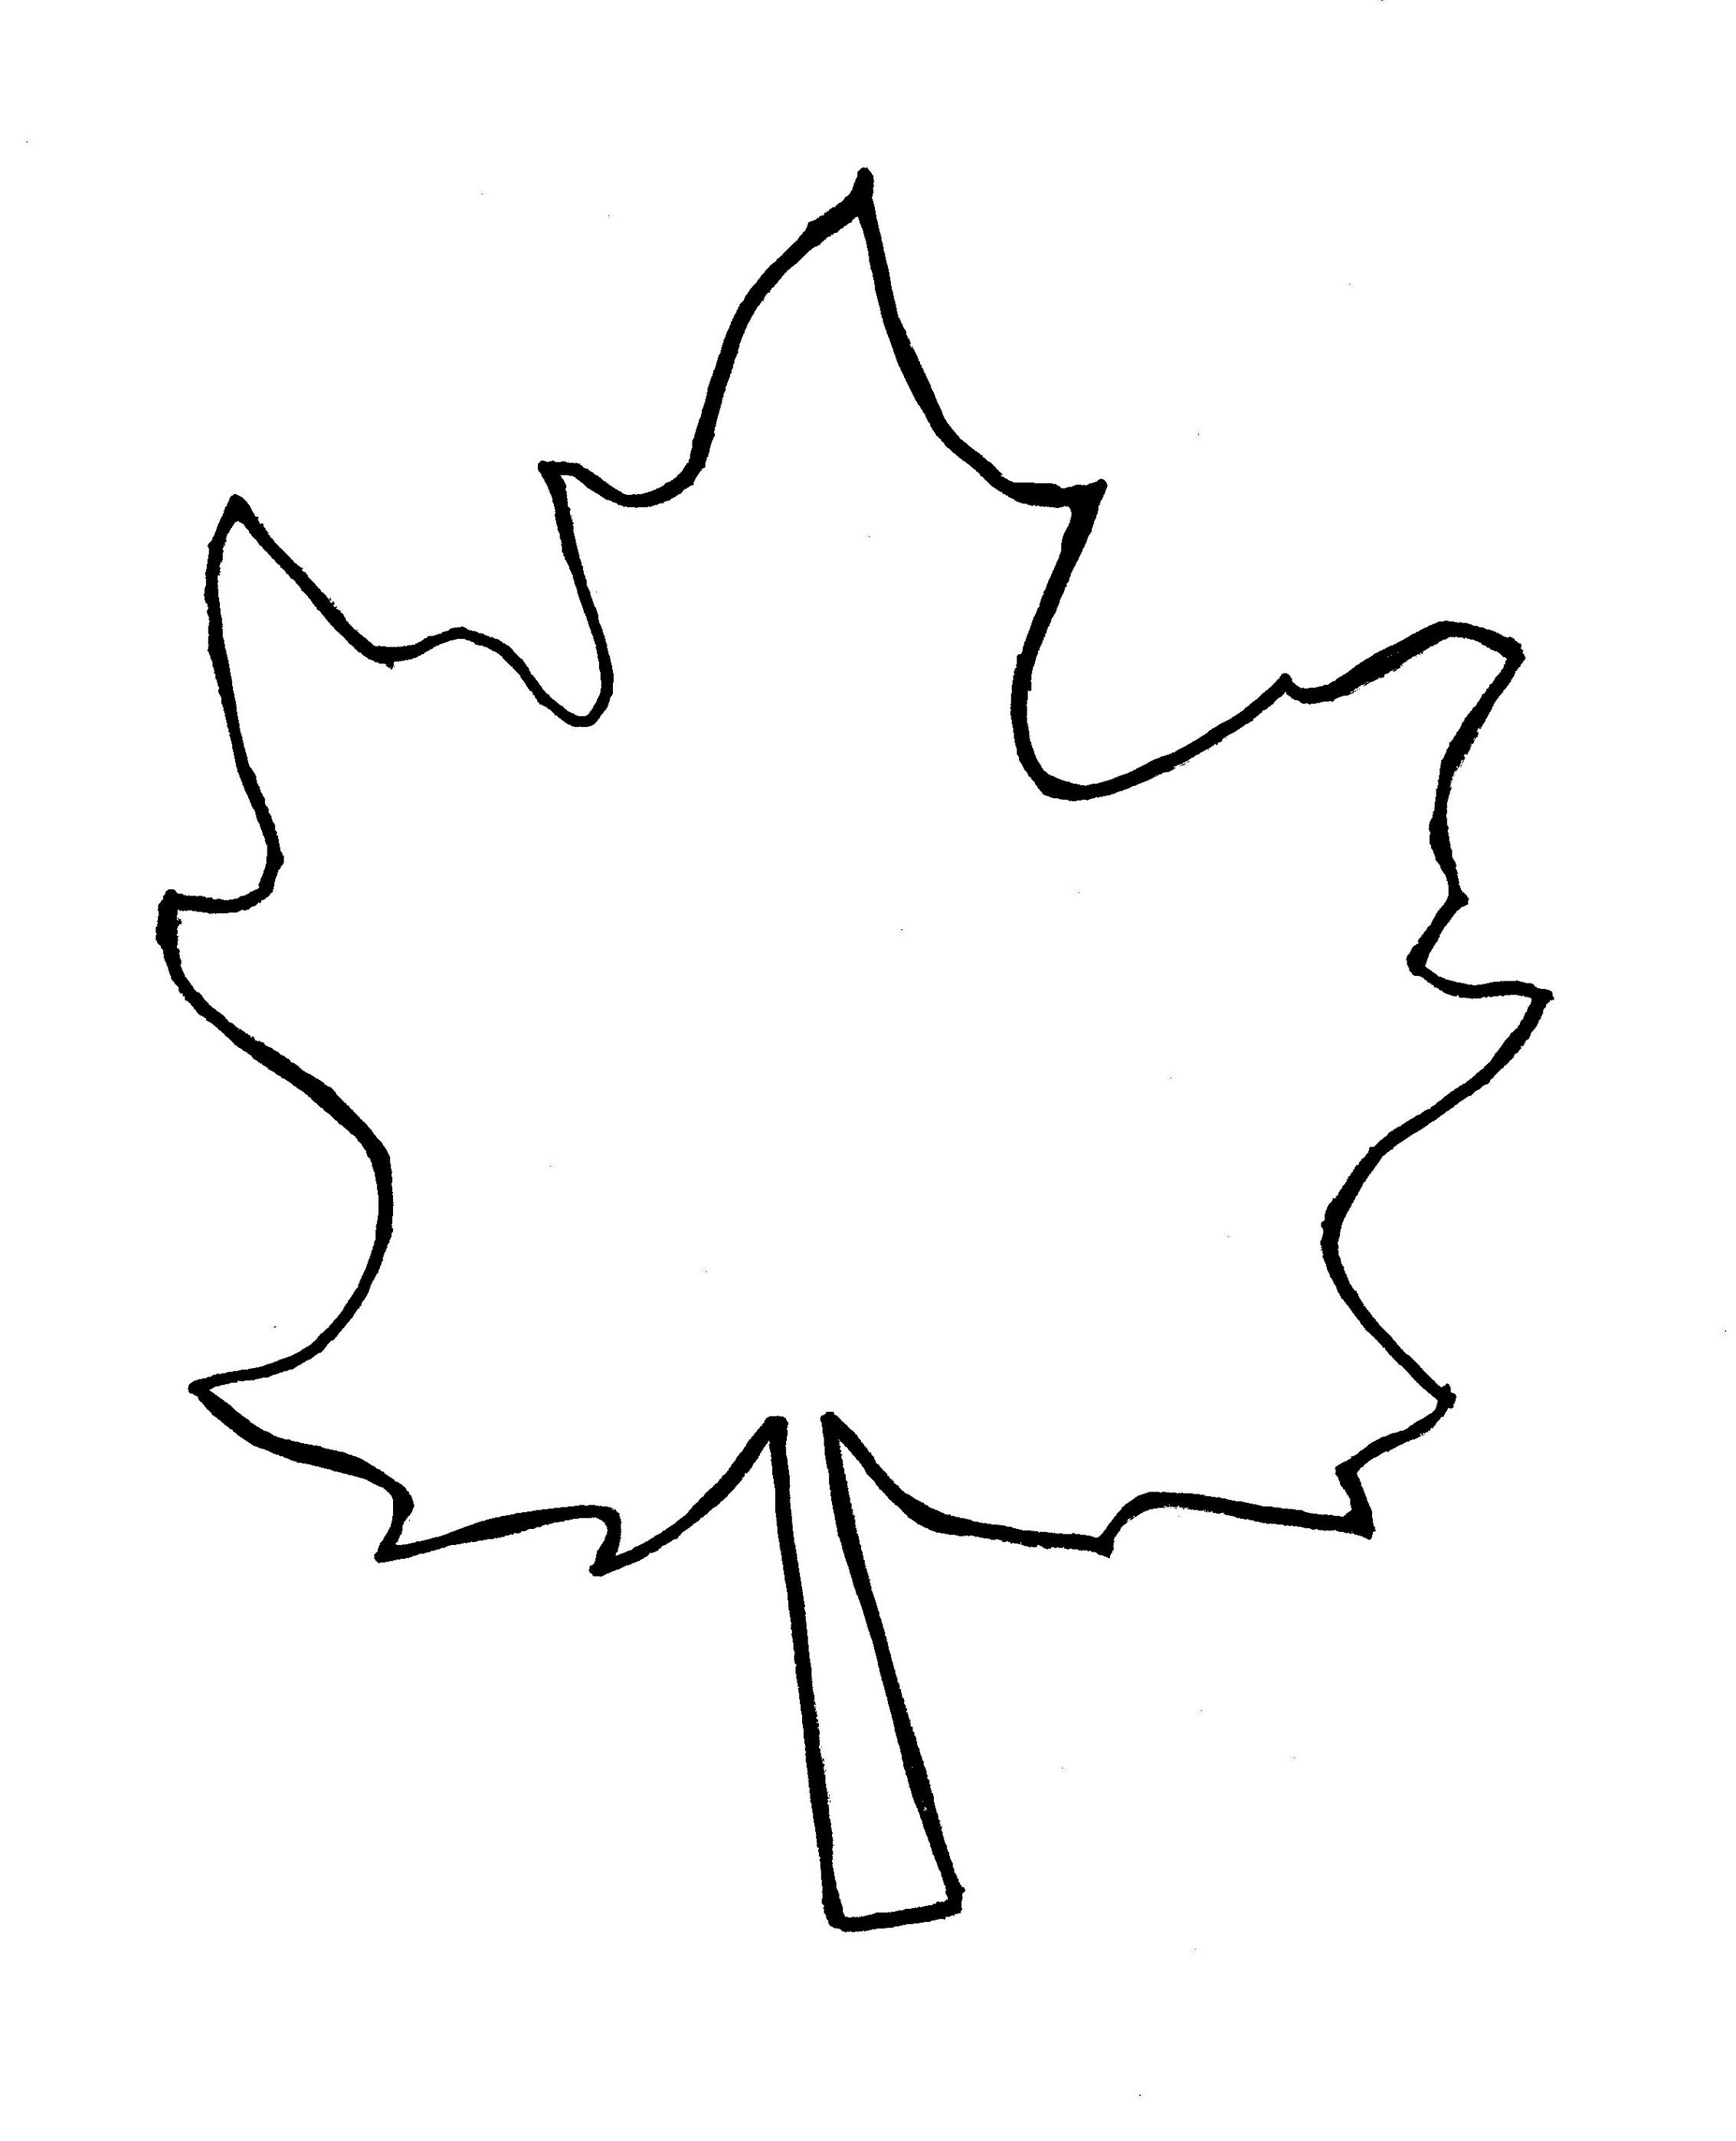 Autumn leaf outline template clipart free to use clip art.